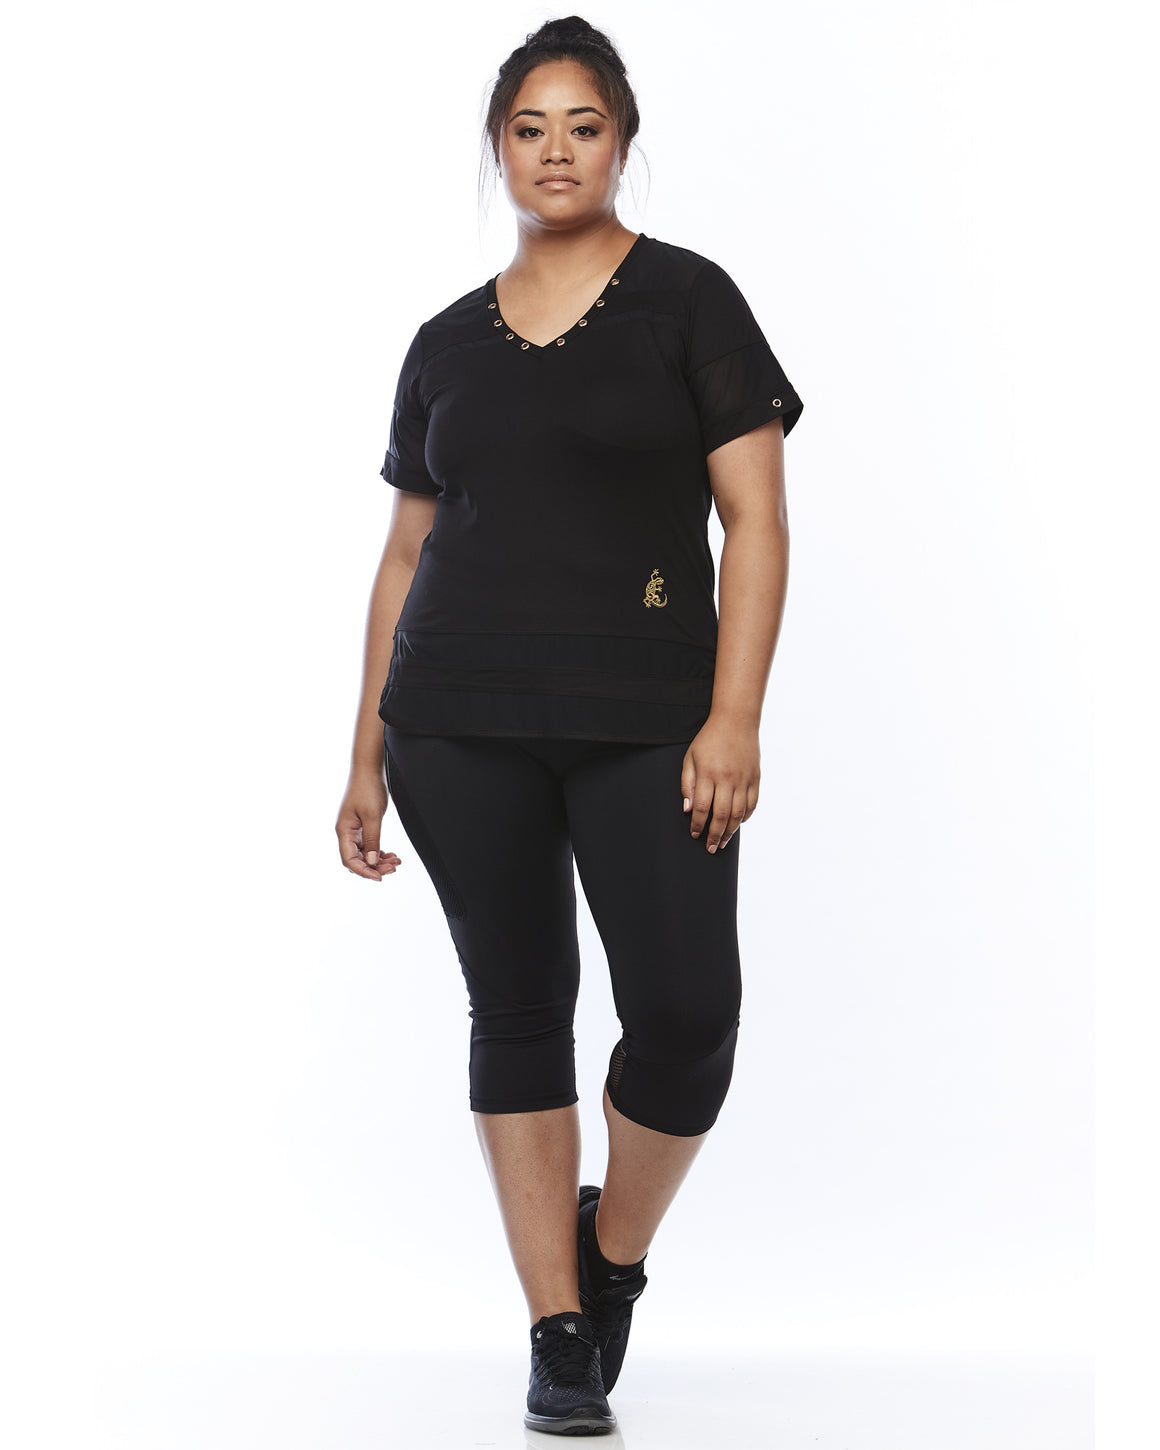 Mood Shot Serene Sports Shirt by Lowanna Australia | Plus Size Sports